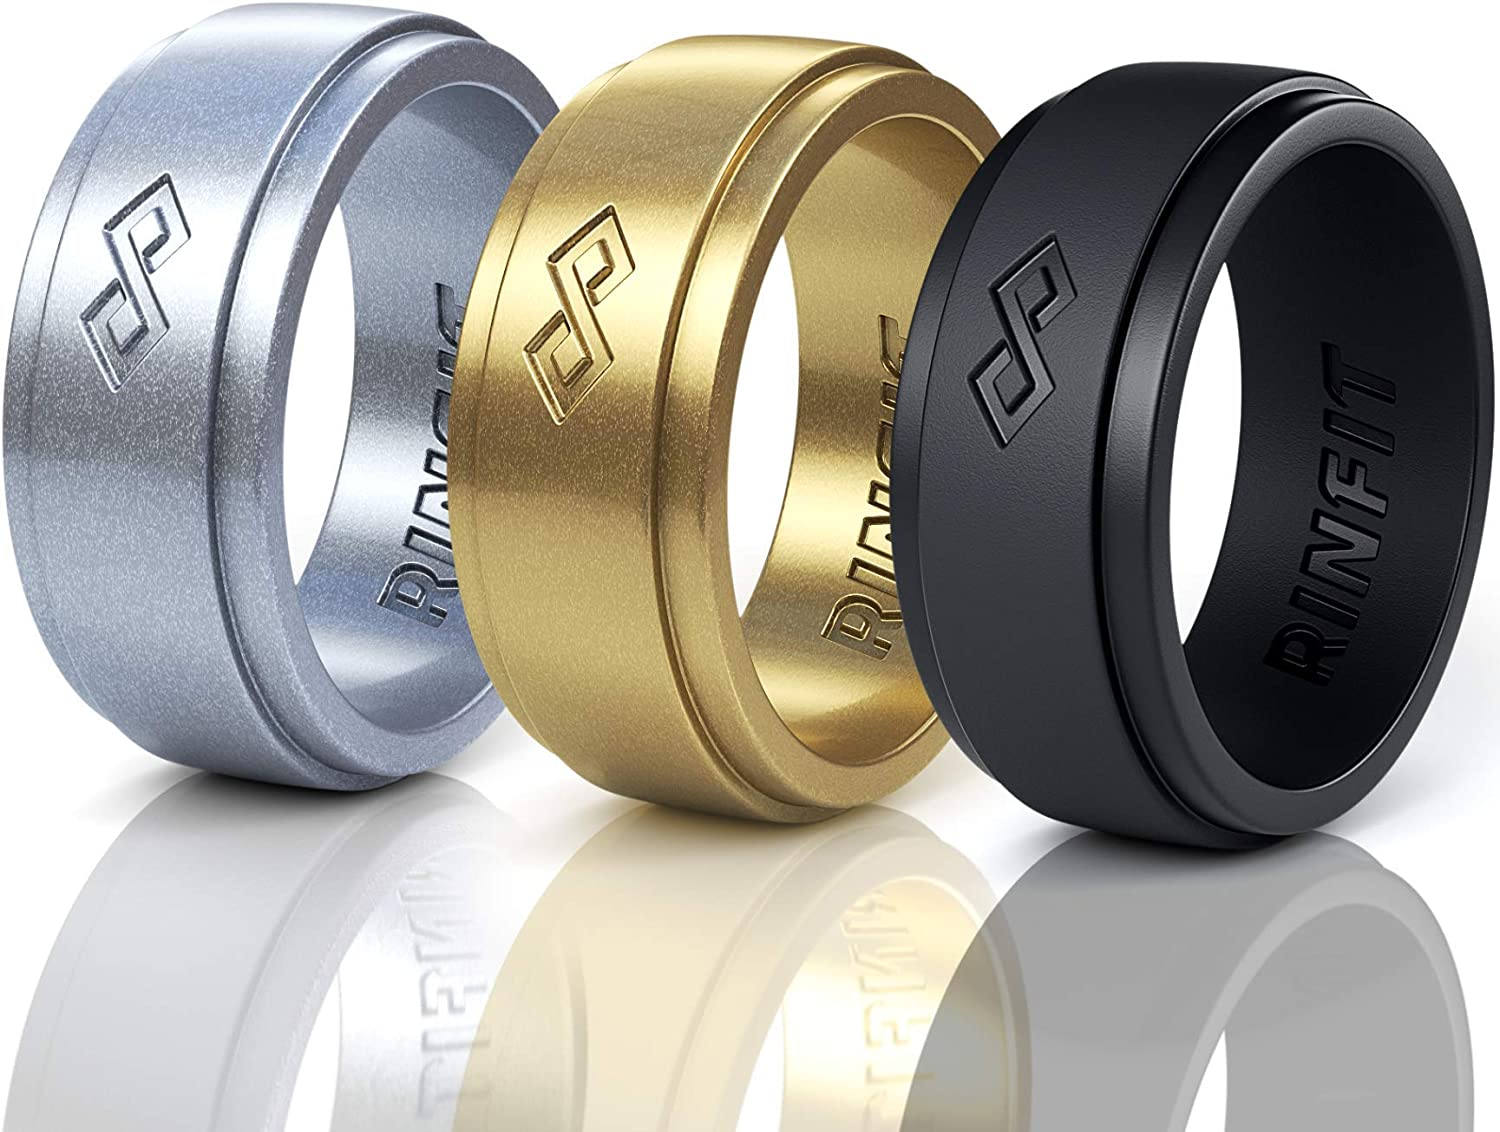 Designed Size 7-14 Rinfit Mens Silicone Wedding Ring 1 or 3 Rings Pack Metallic Colors. Safe /& Soft Men Silicon Rubber Wedding Ring